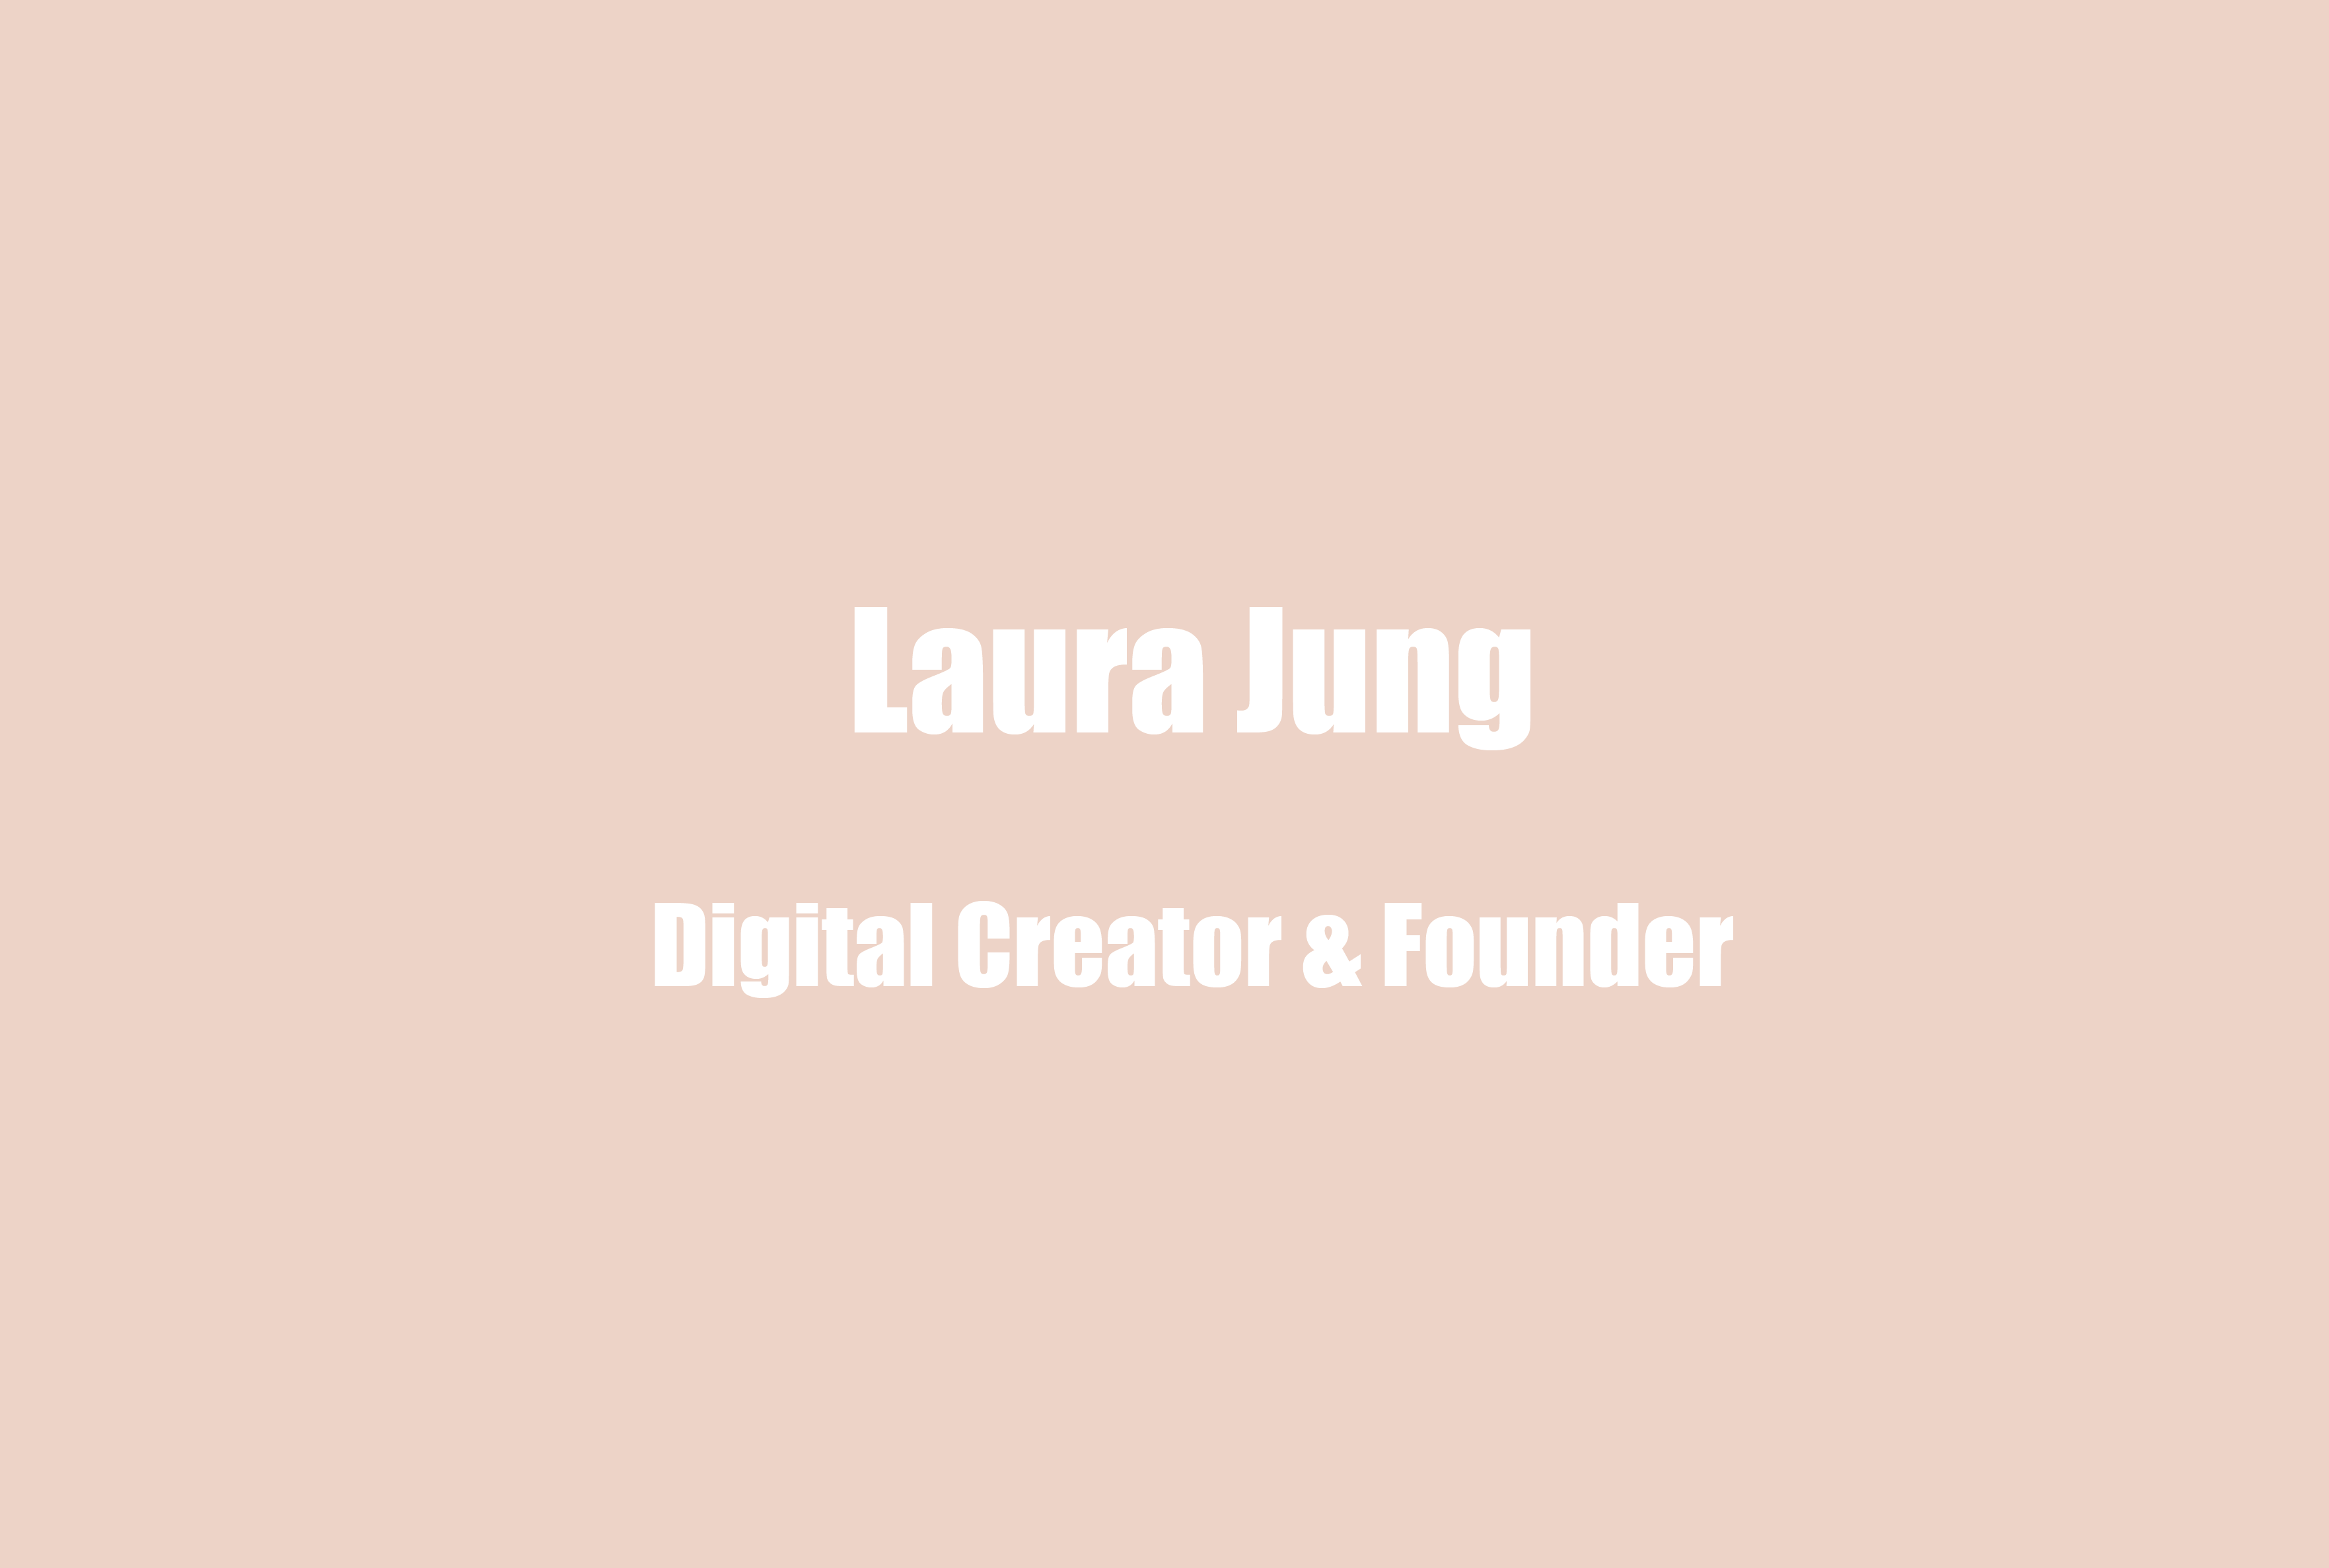 """Laura Jung, Digital Creator & Founder of Event Series @skincontactnyc on the Unique Risks for """"Burnout"""" as an Influencer and What Fuels Her Love for [Online] Community"""